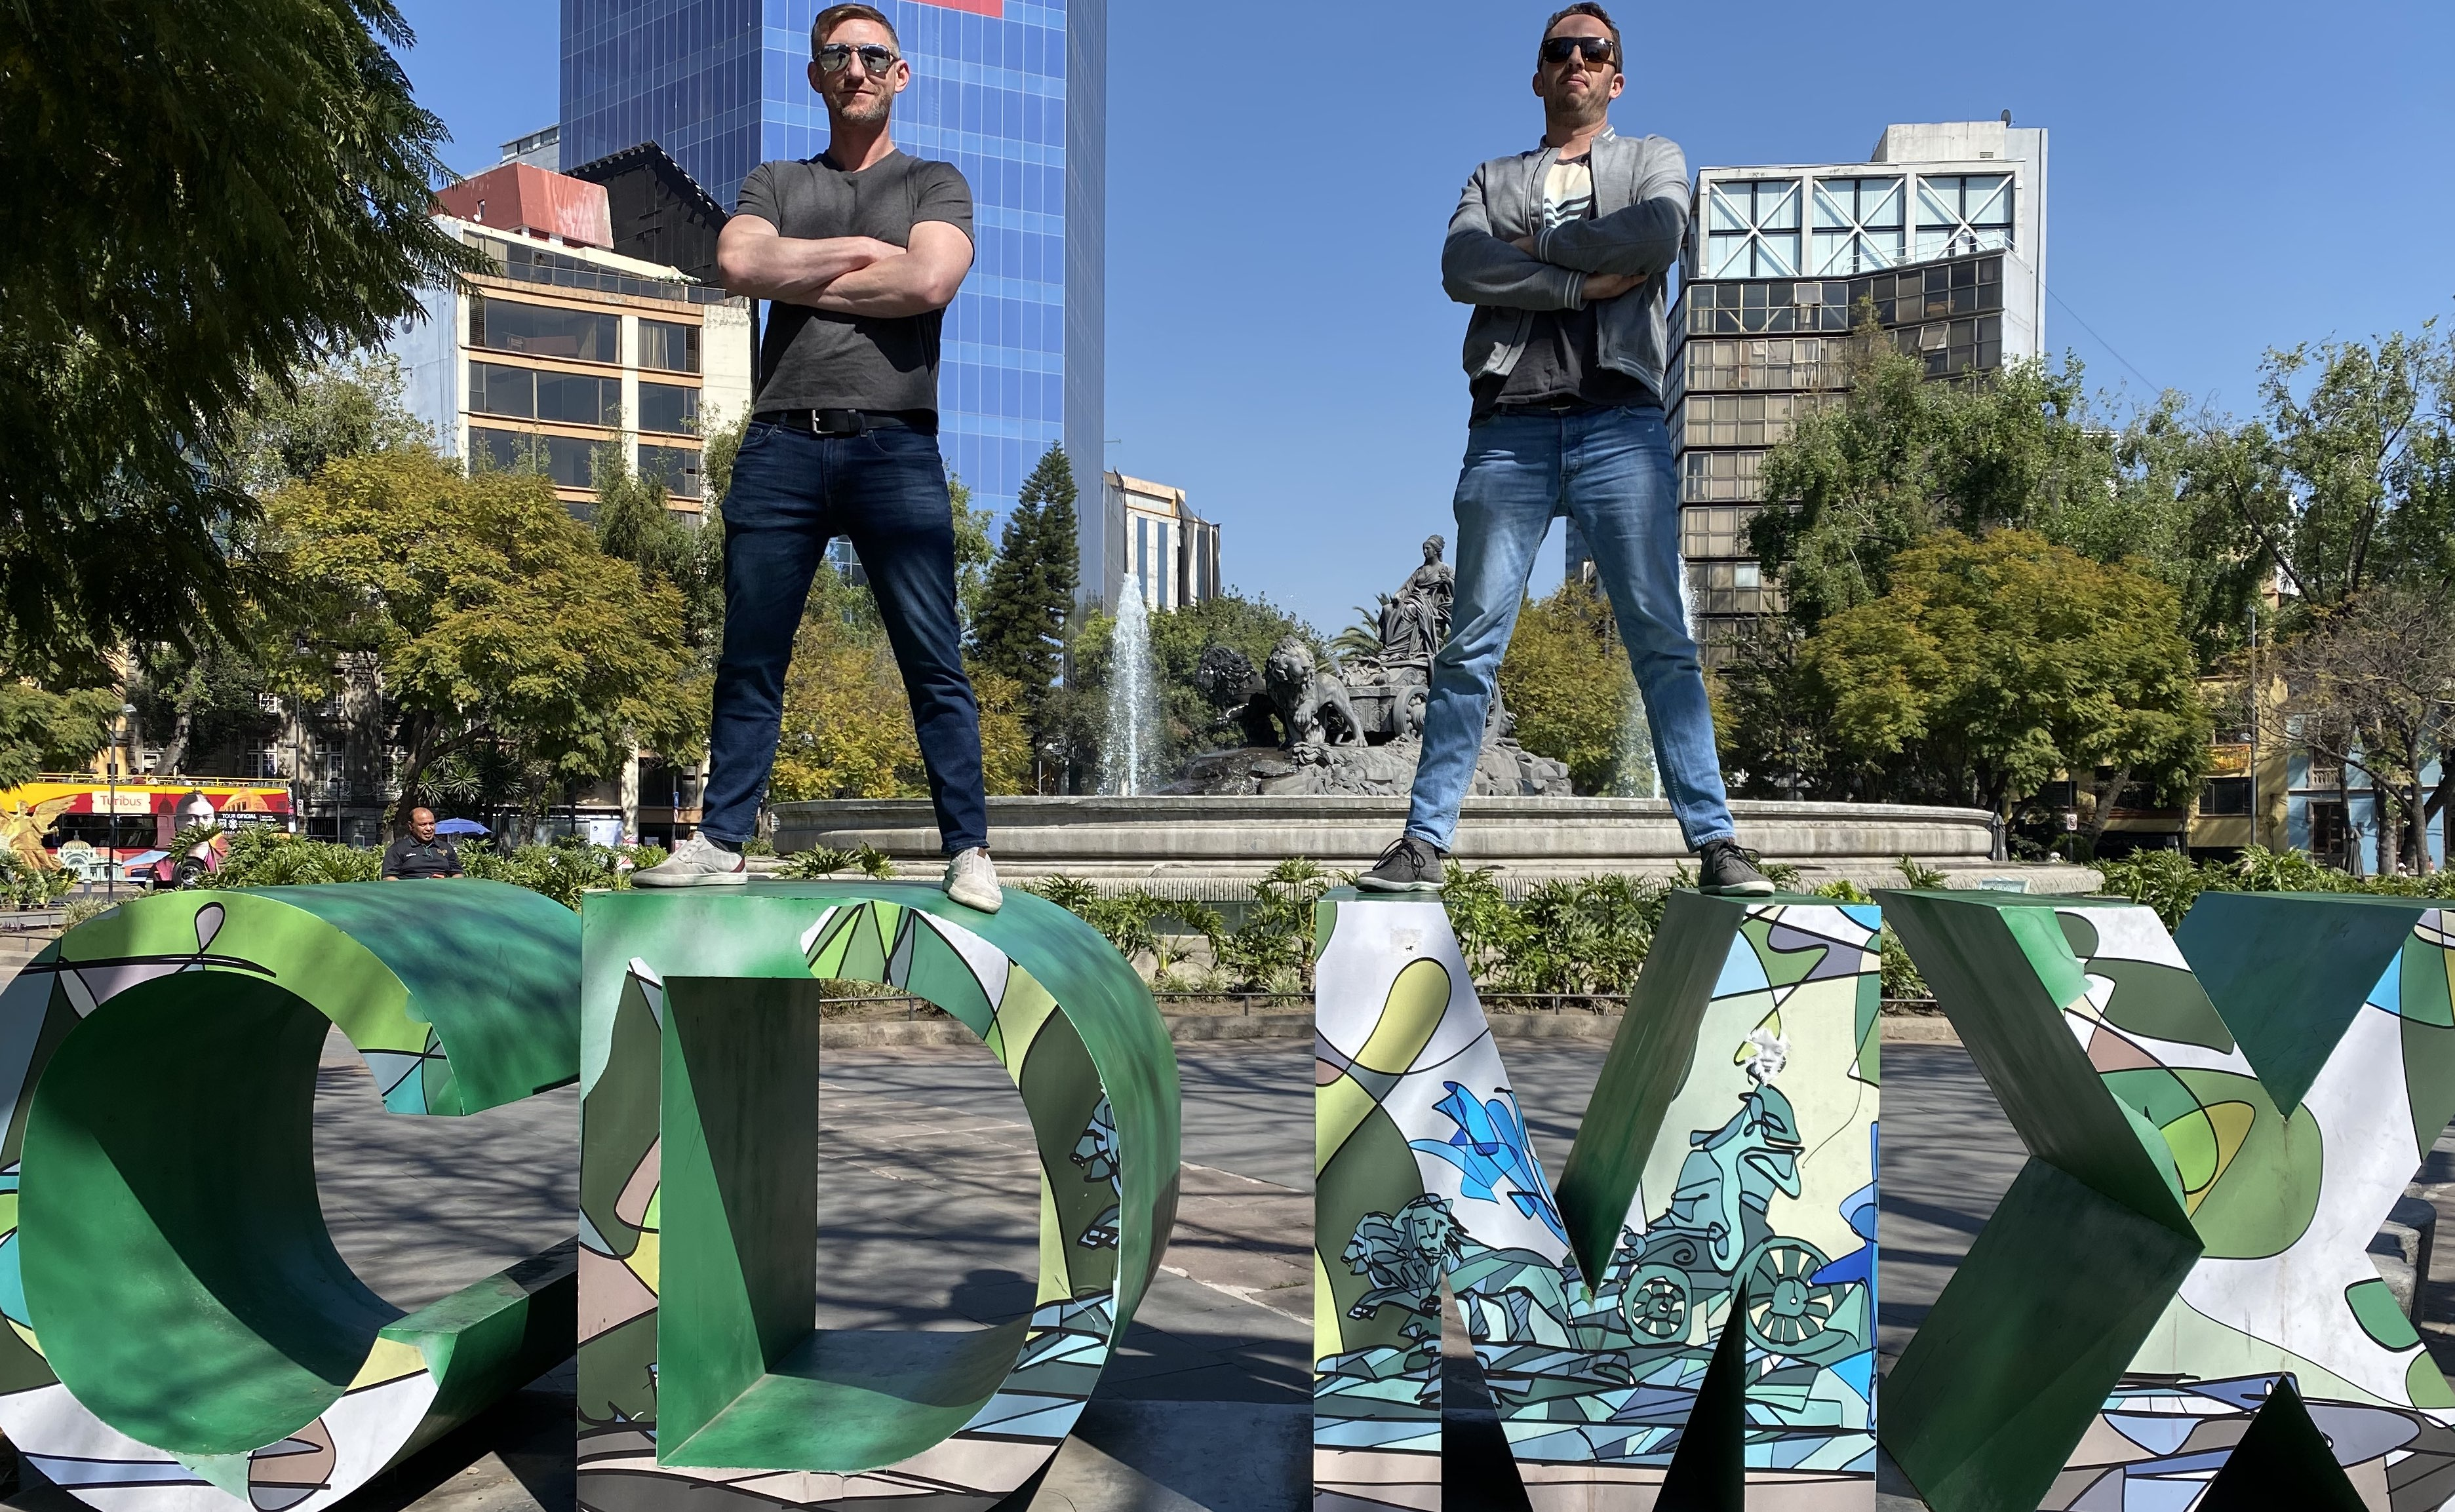 Josh Melick and Travis Pollock standing on CDMX sign in Mexico City